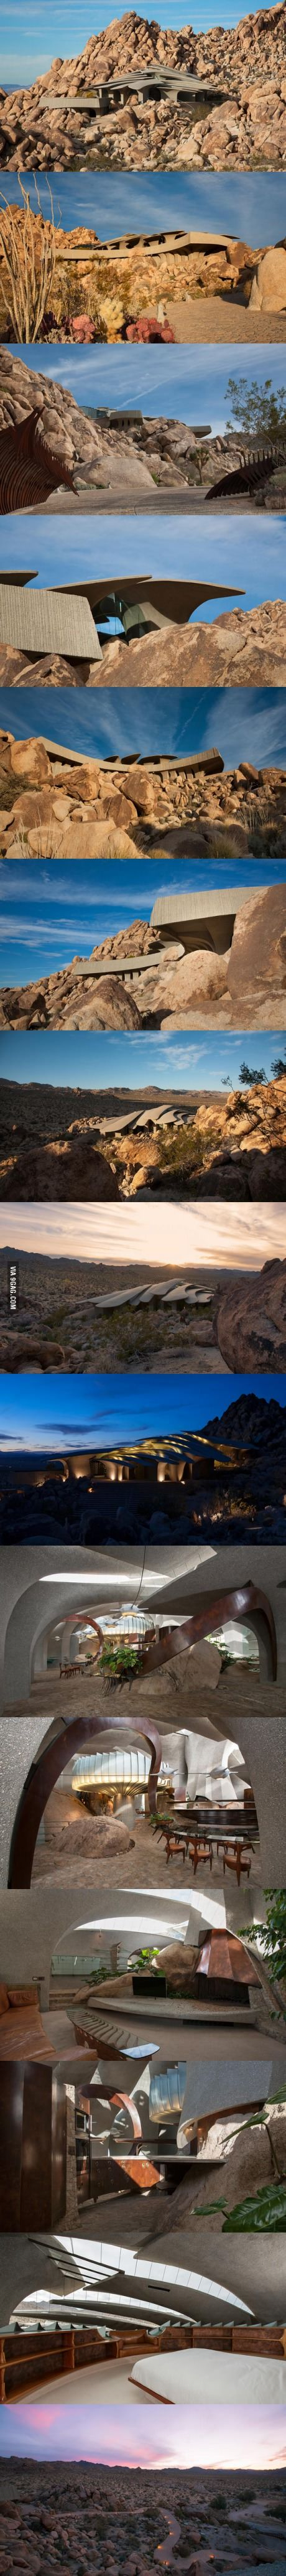 The latest Supervillain lair is now for sale in Joshua Tree, California.